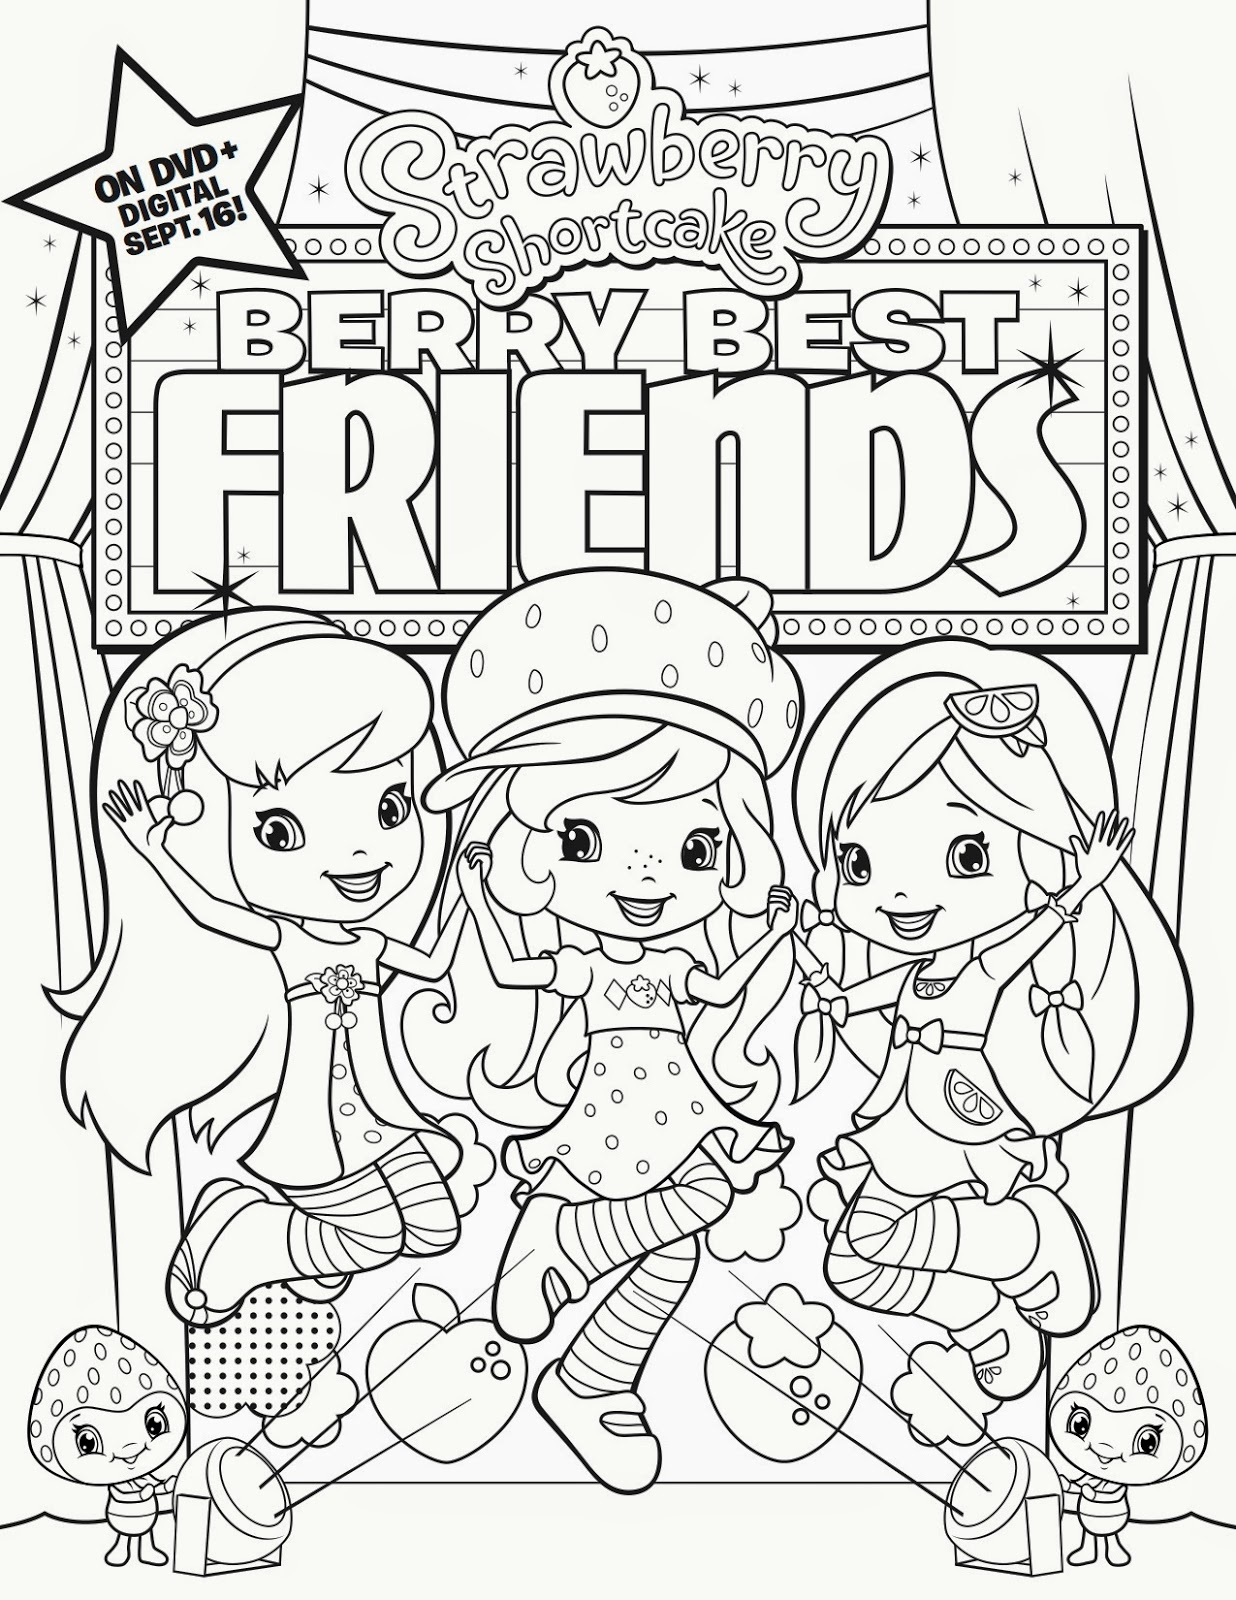 free coloring pages, Strawberry Shortcake